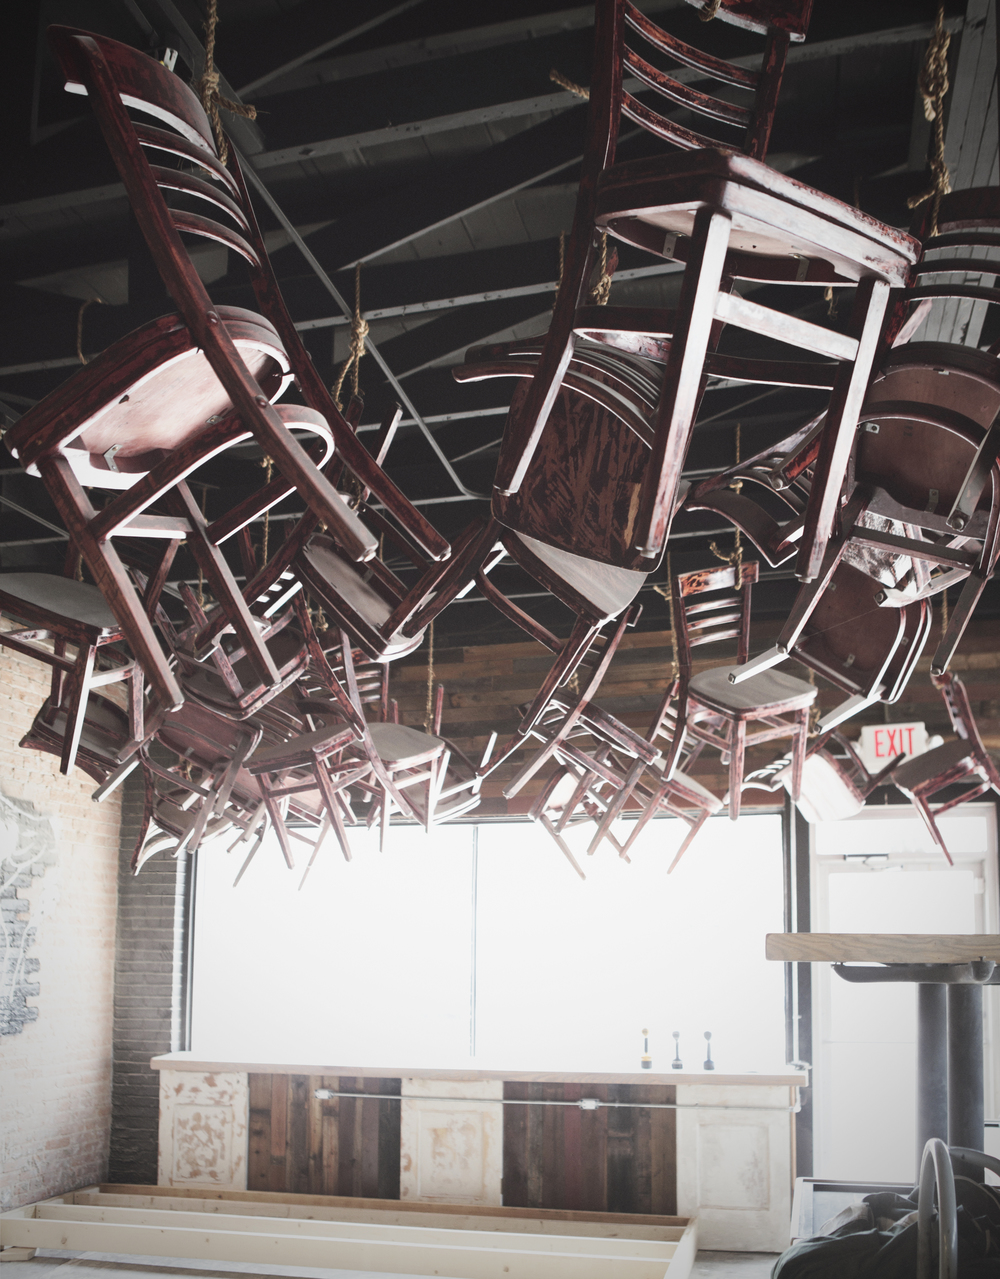 Chairs from Burguesa are strung up on the ceiling.